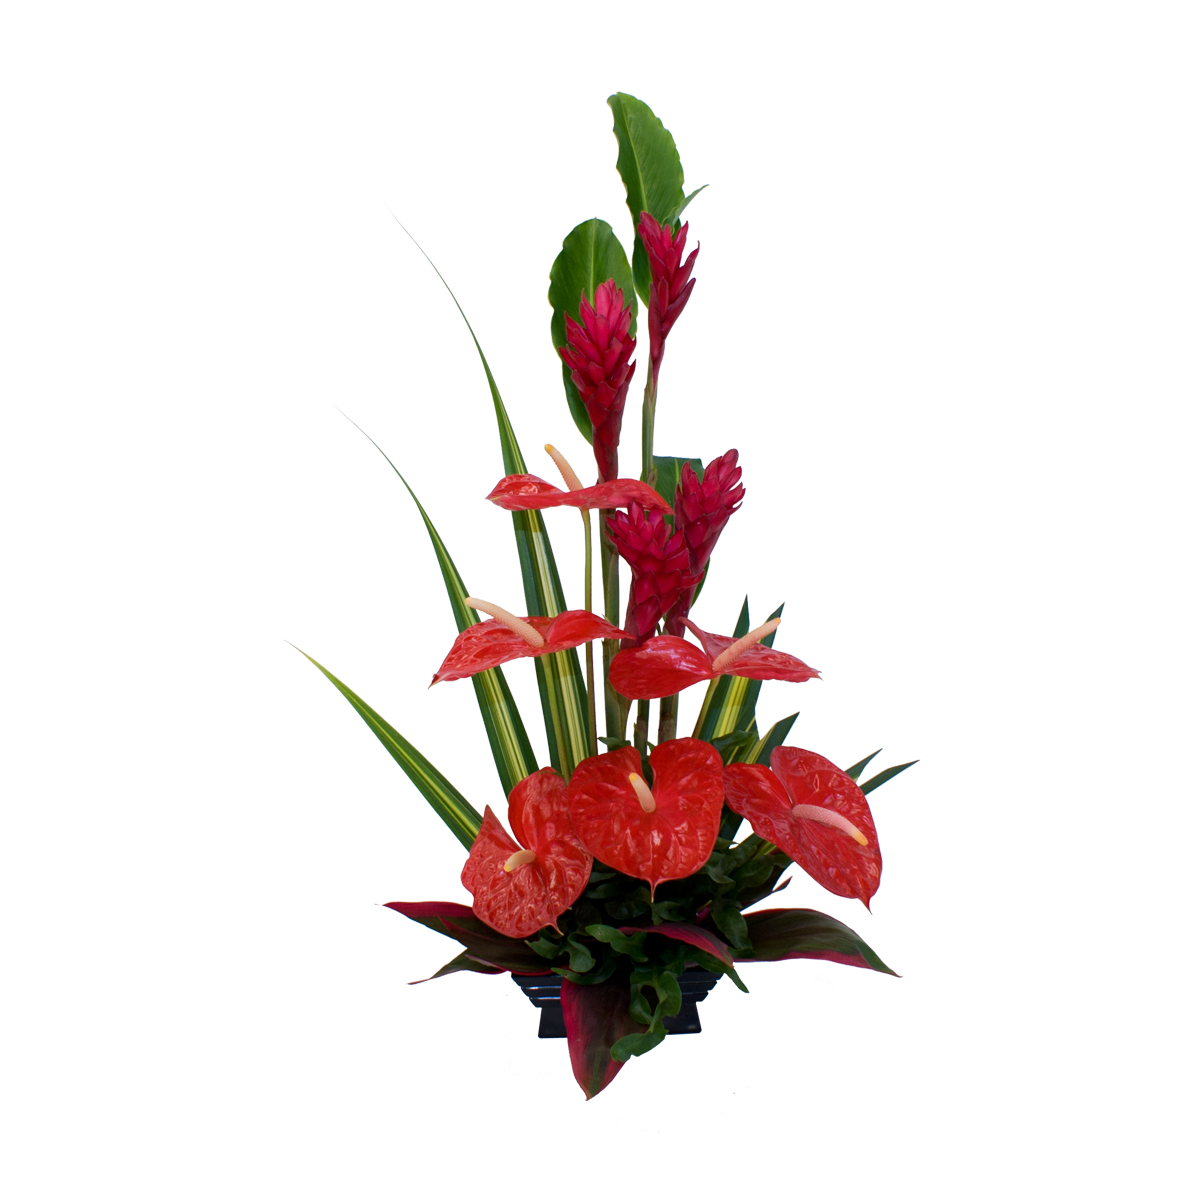 Ginger flower png. Red anthurium and hawaiian